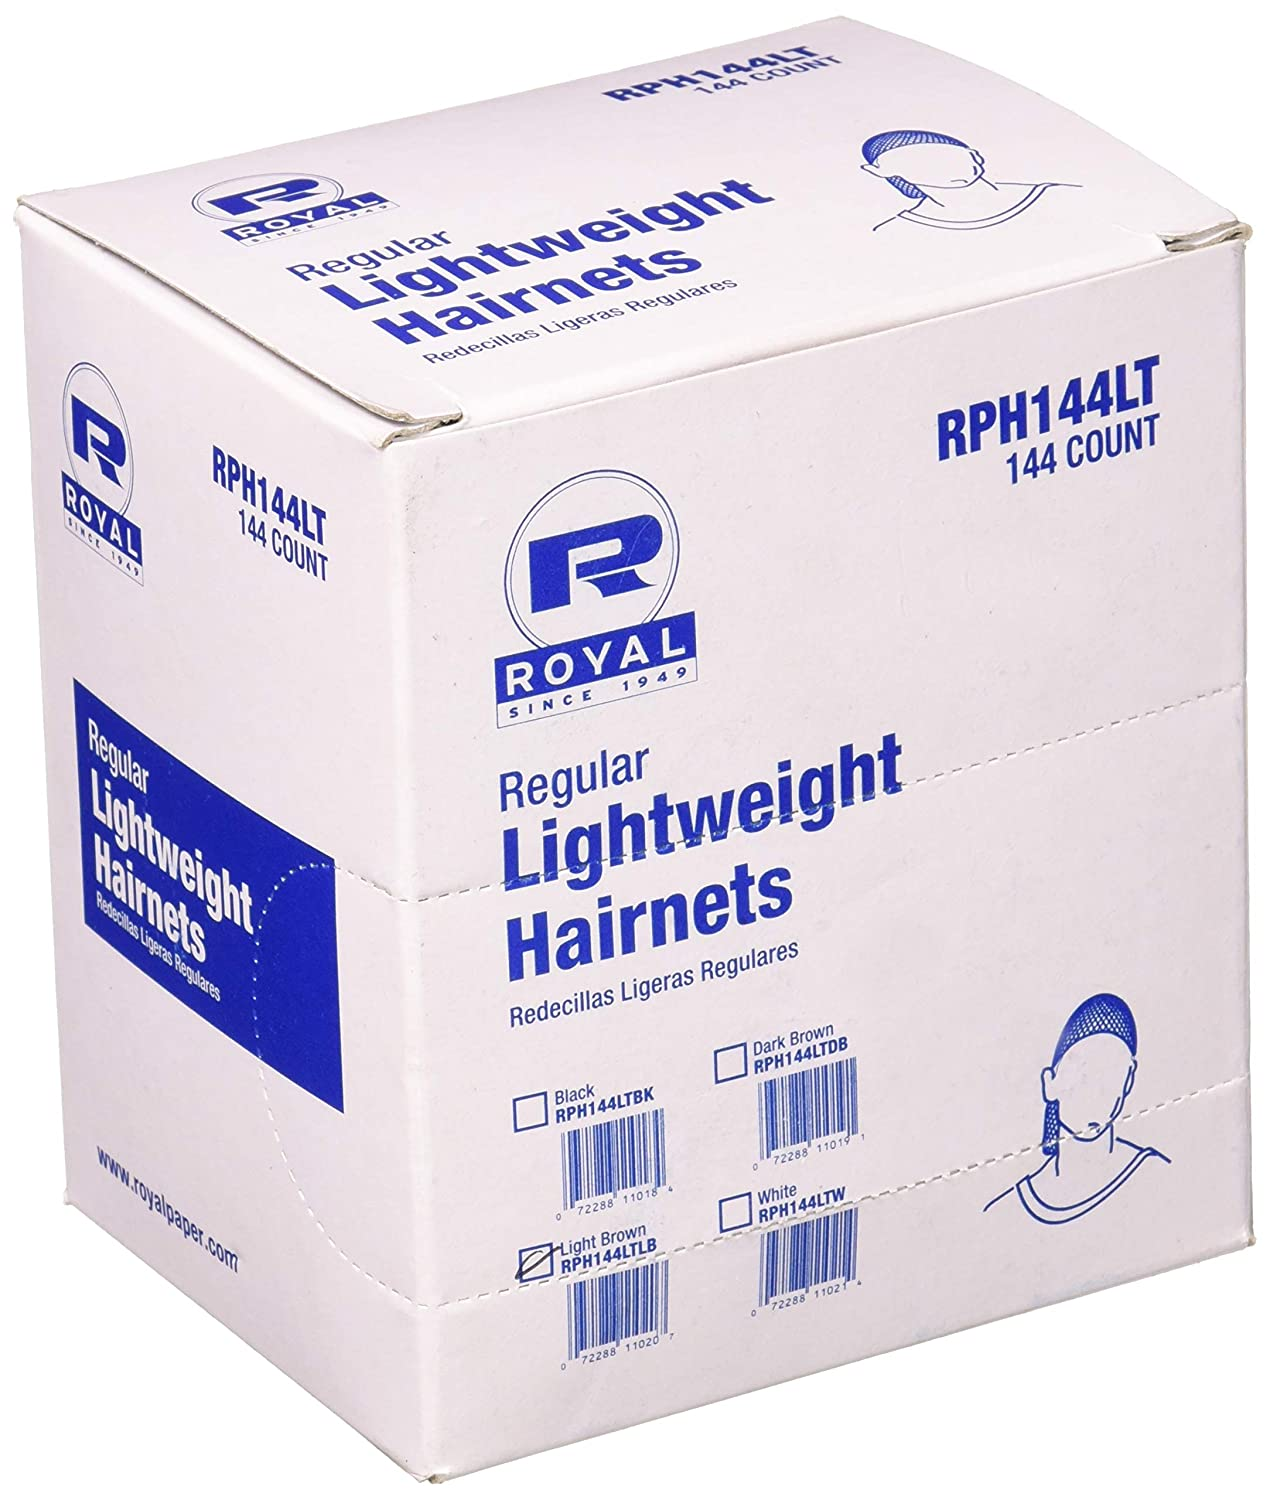 Royal 24' Light Brown Light Weight Hairnet, Disposable and Latex Free, Package of 144 RPH144LTLB-IN